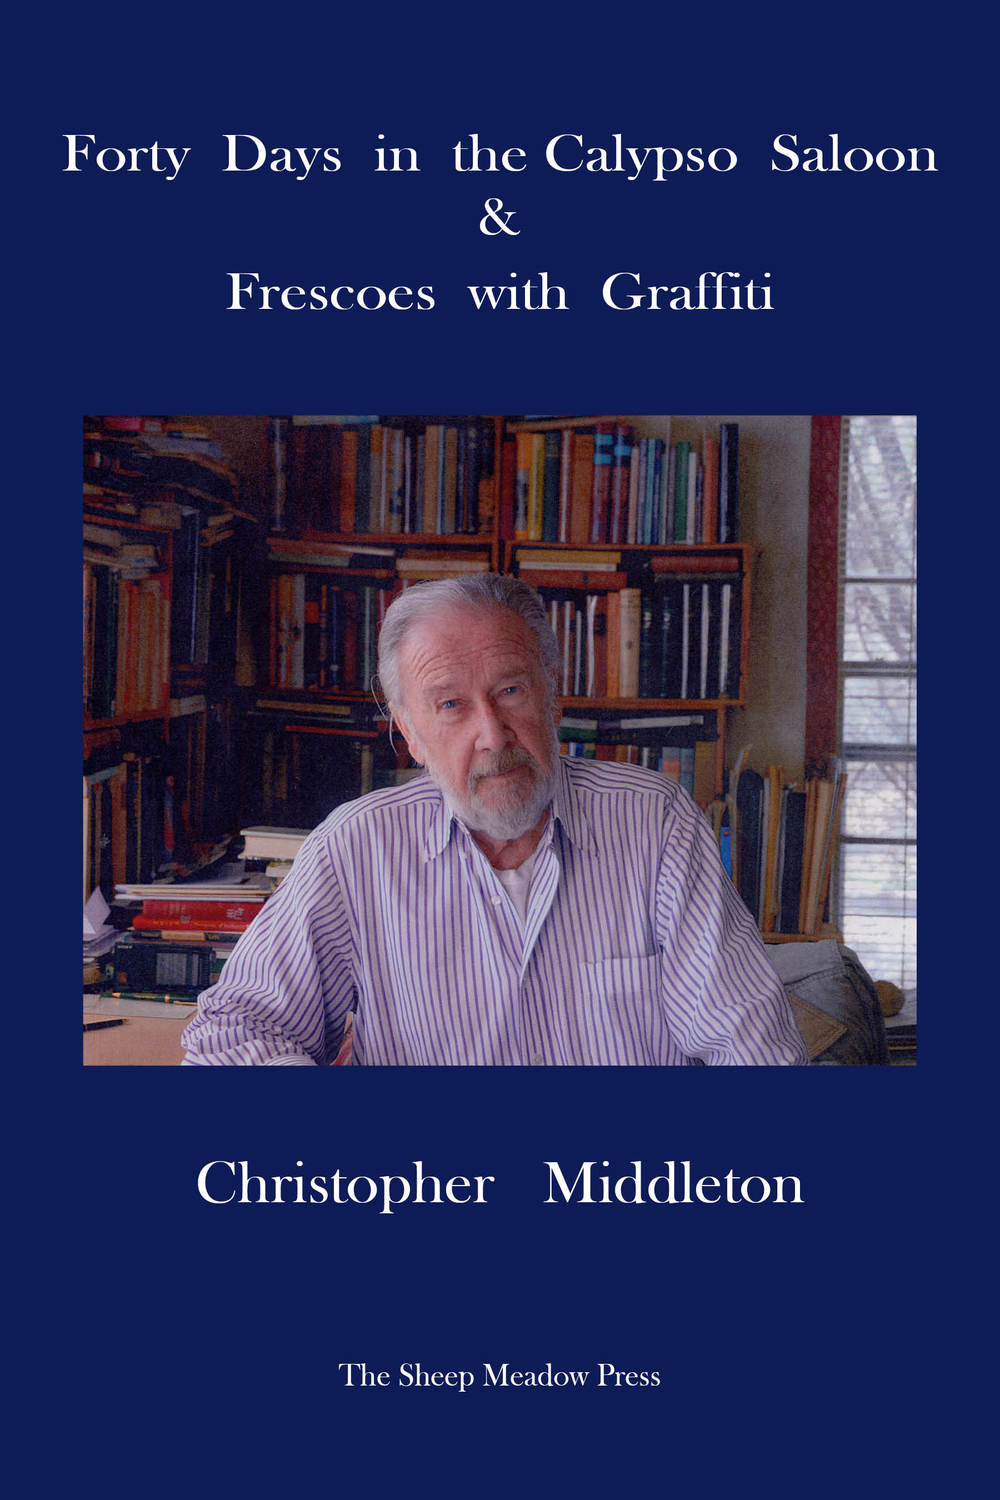 MIddleton_Front Cover_6.19.2013_GALLEY.jpg